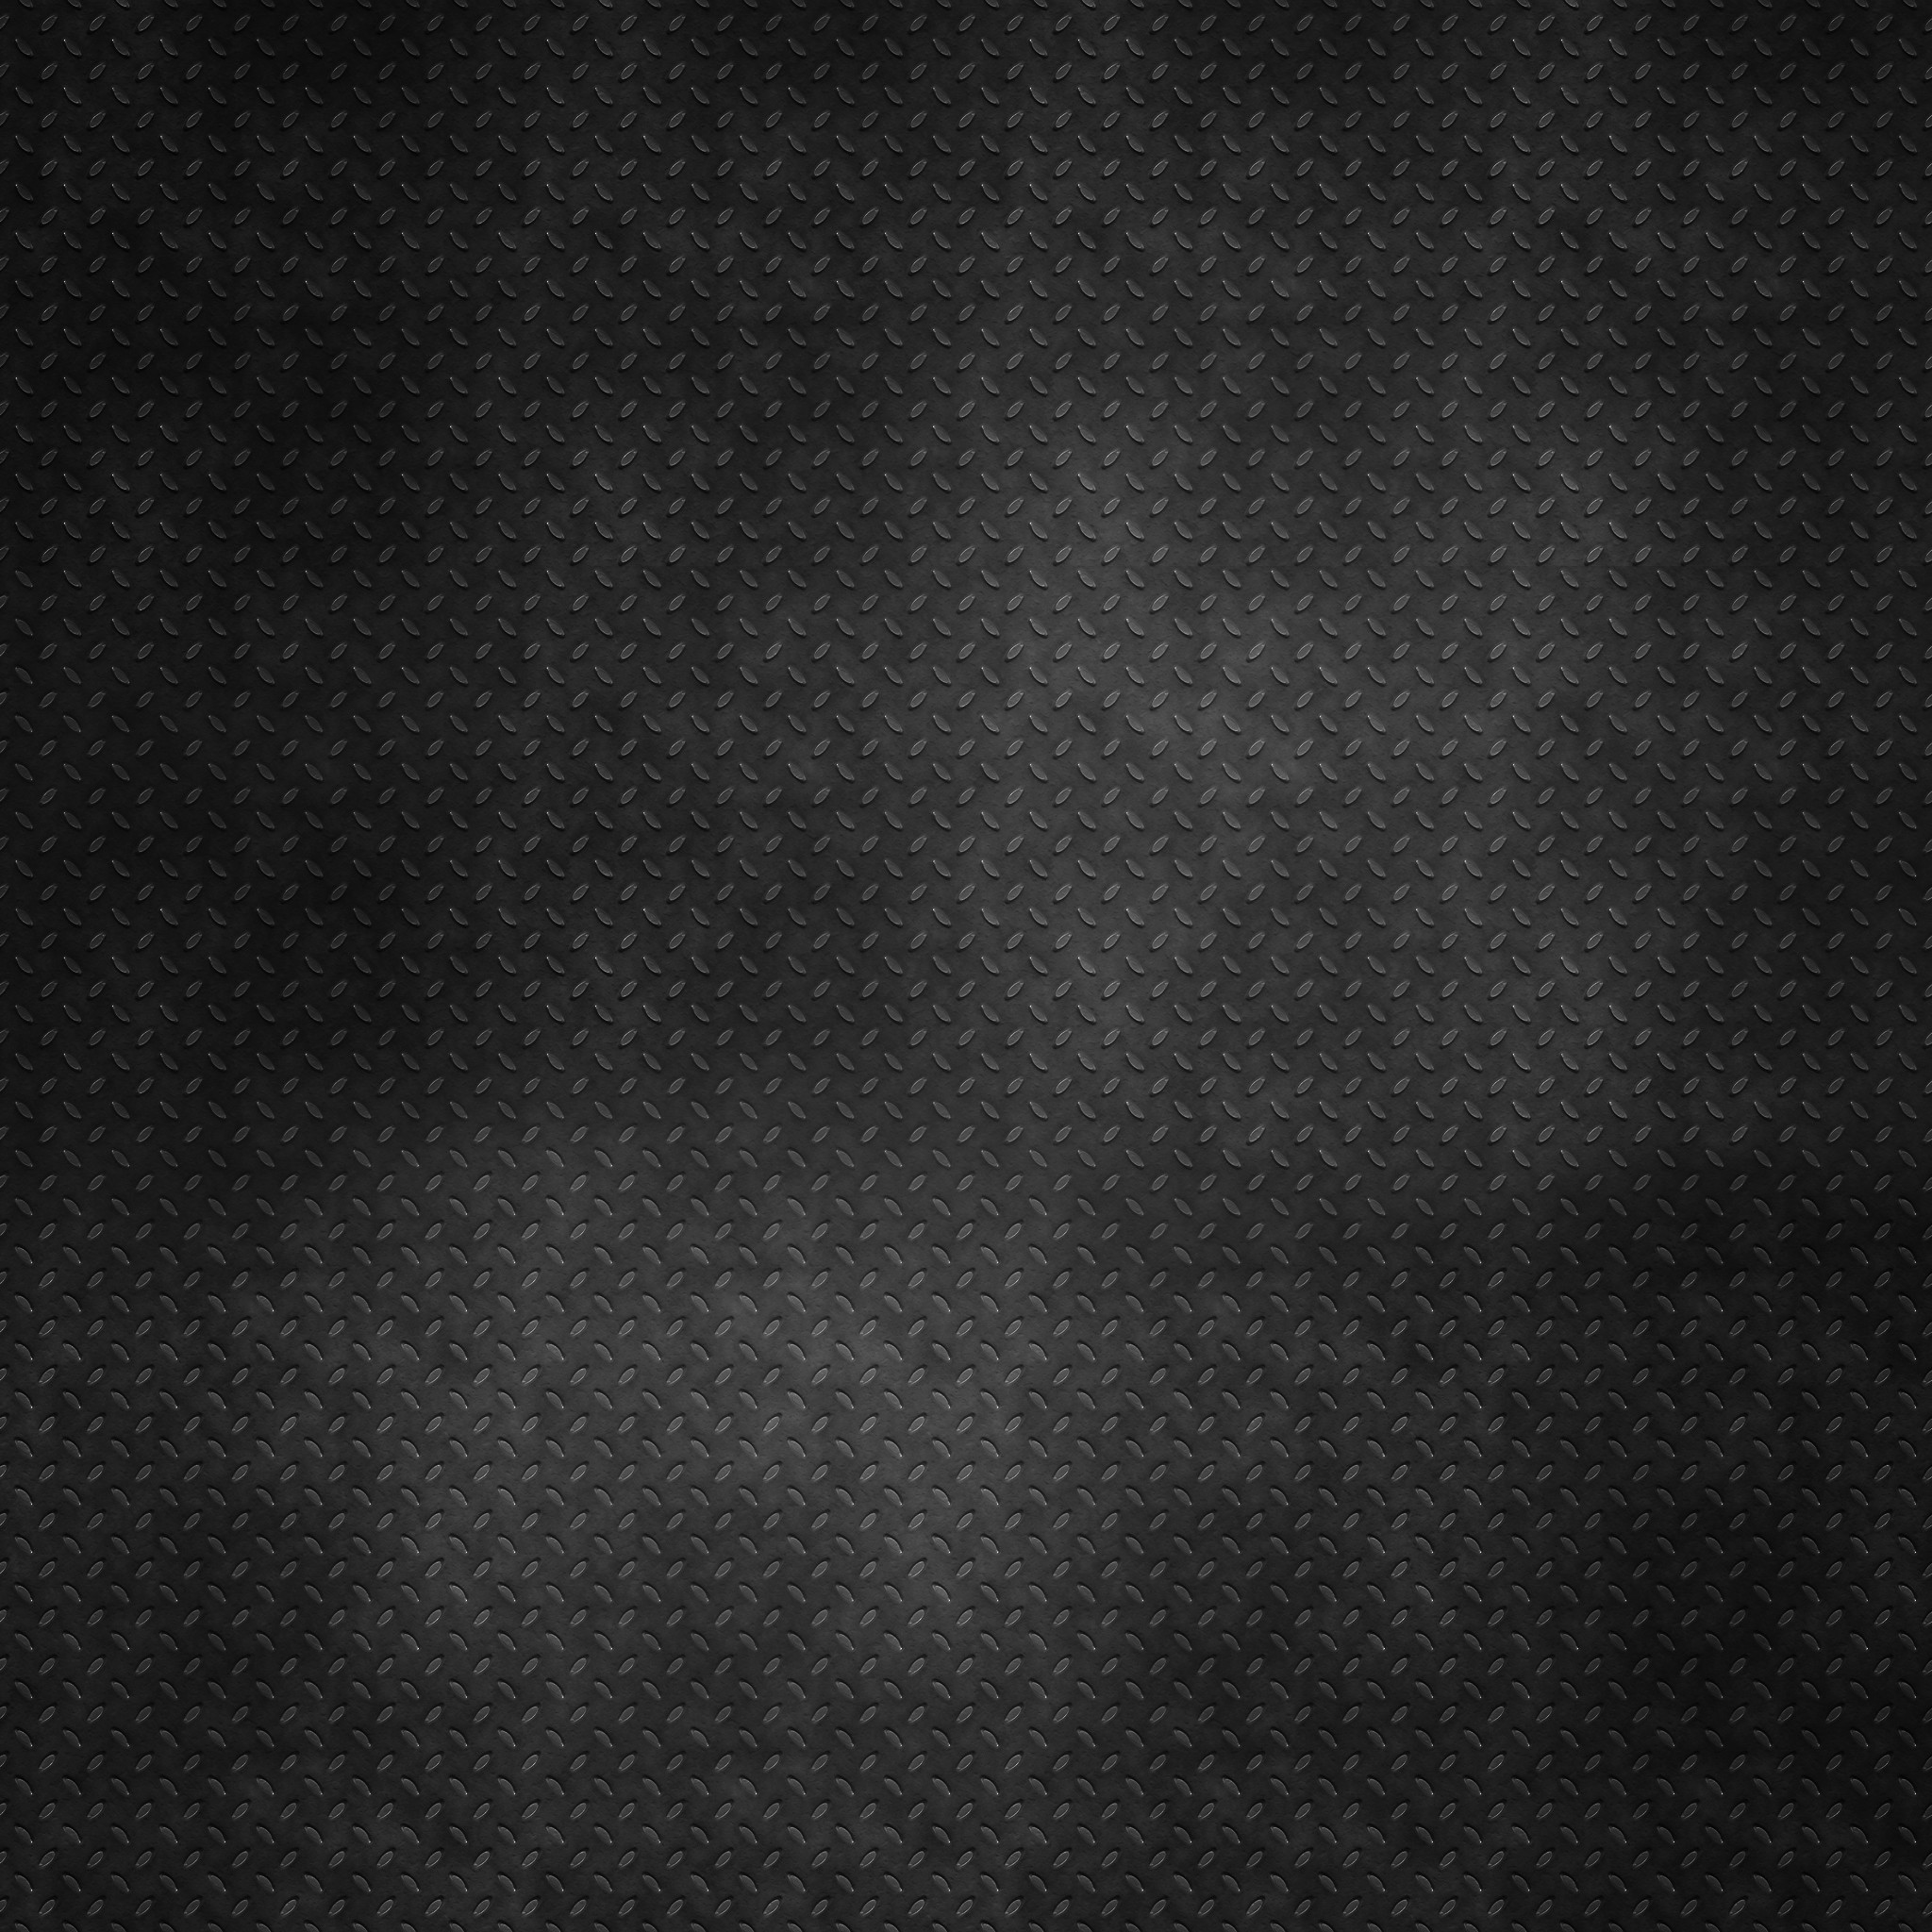 Res: 2048x2048, Black Metal Textured Background Abstract Wallpaper